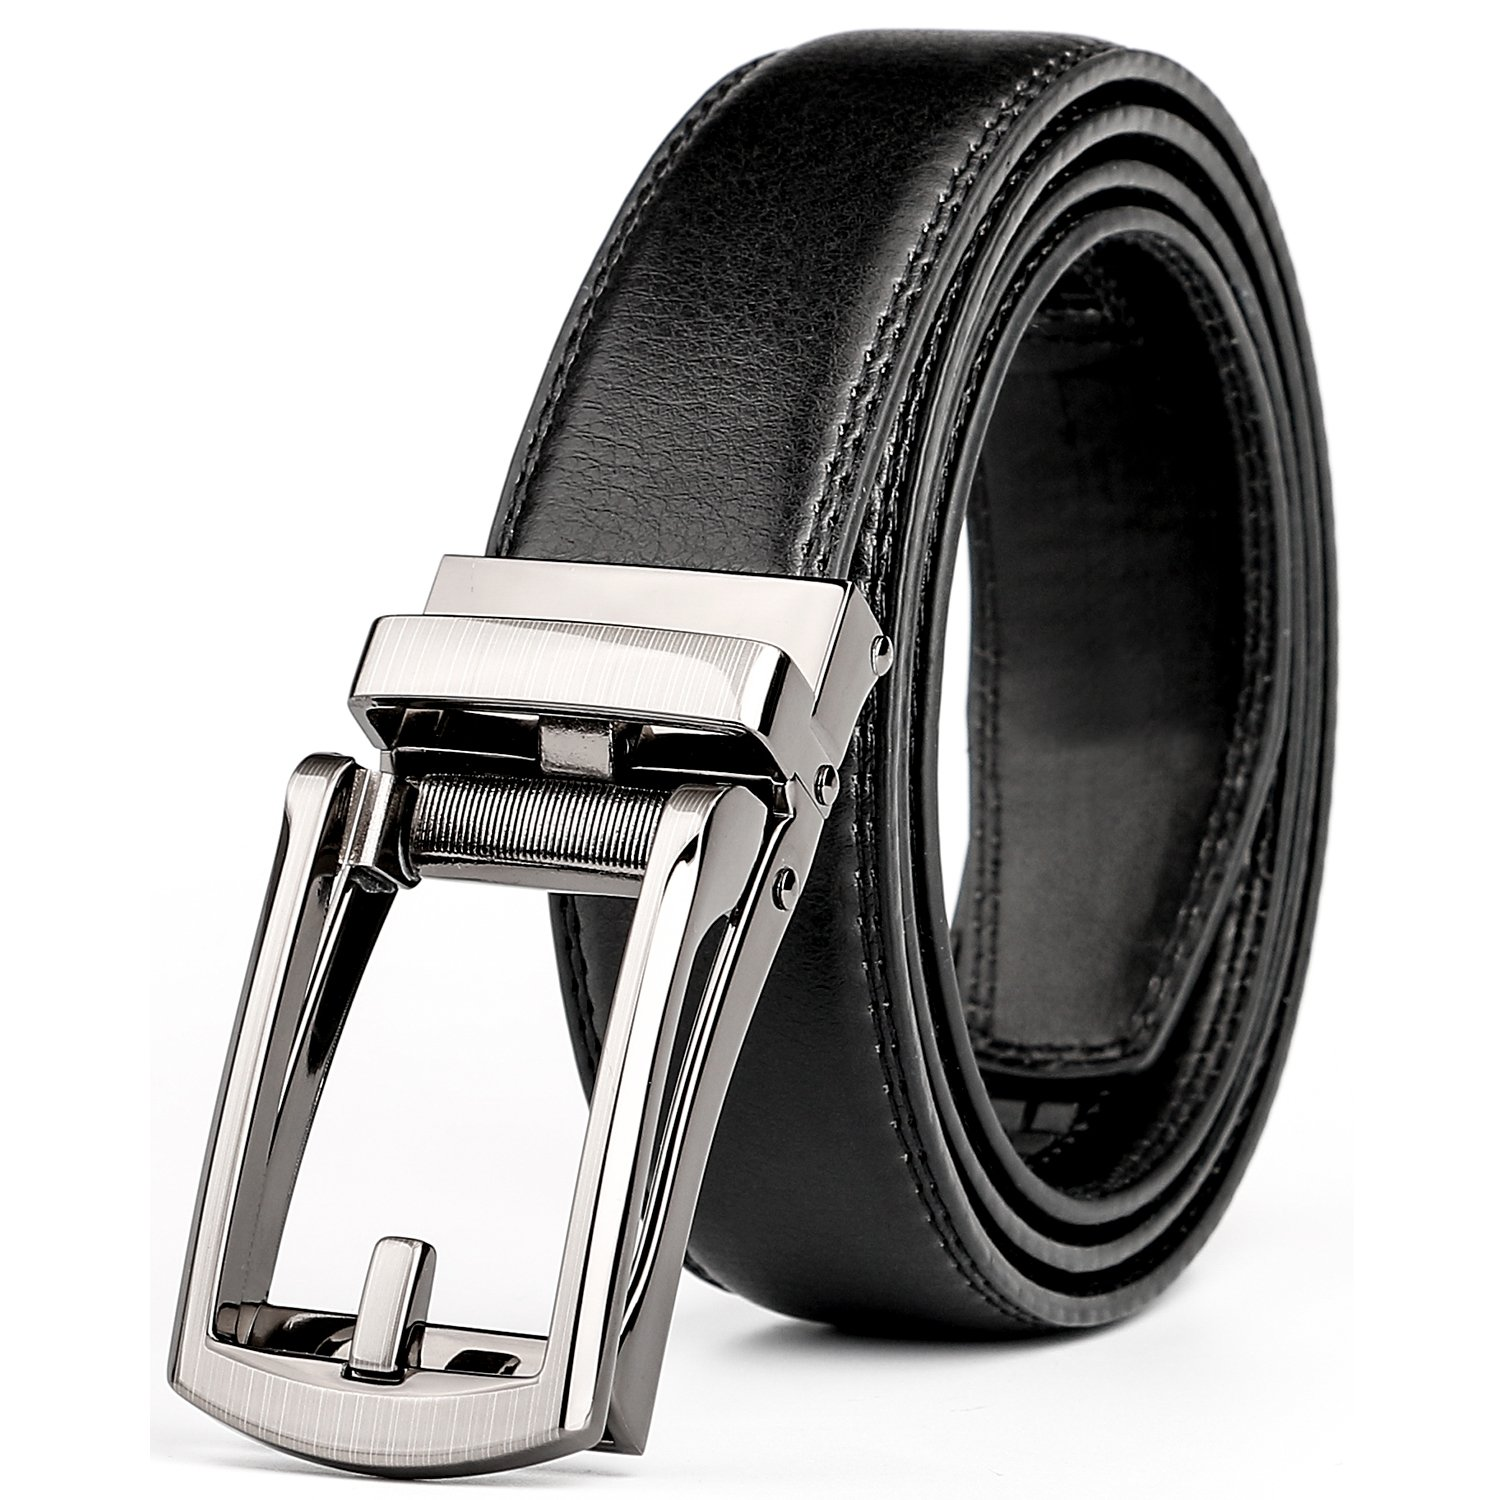 WERFORU Leather Ratchet Dress Belt for Men Perfect Fit Waist Size Up to 44'' with Automatic Buckle by WERFORU